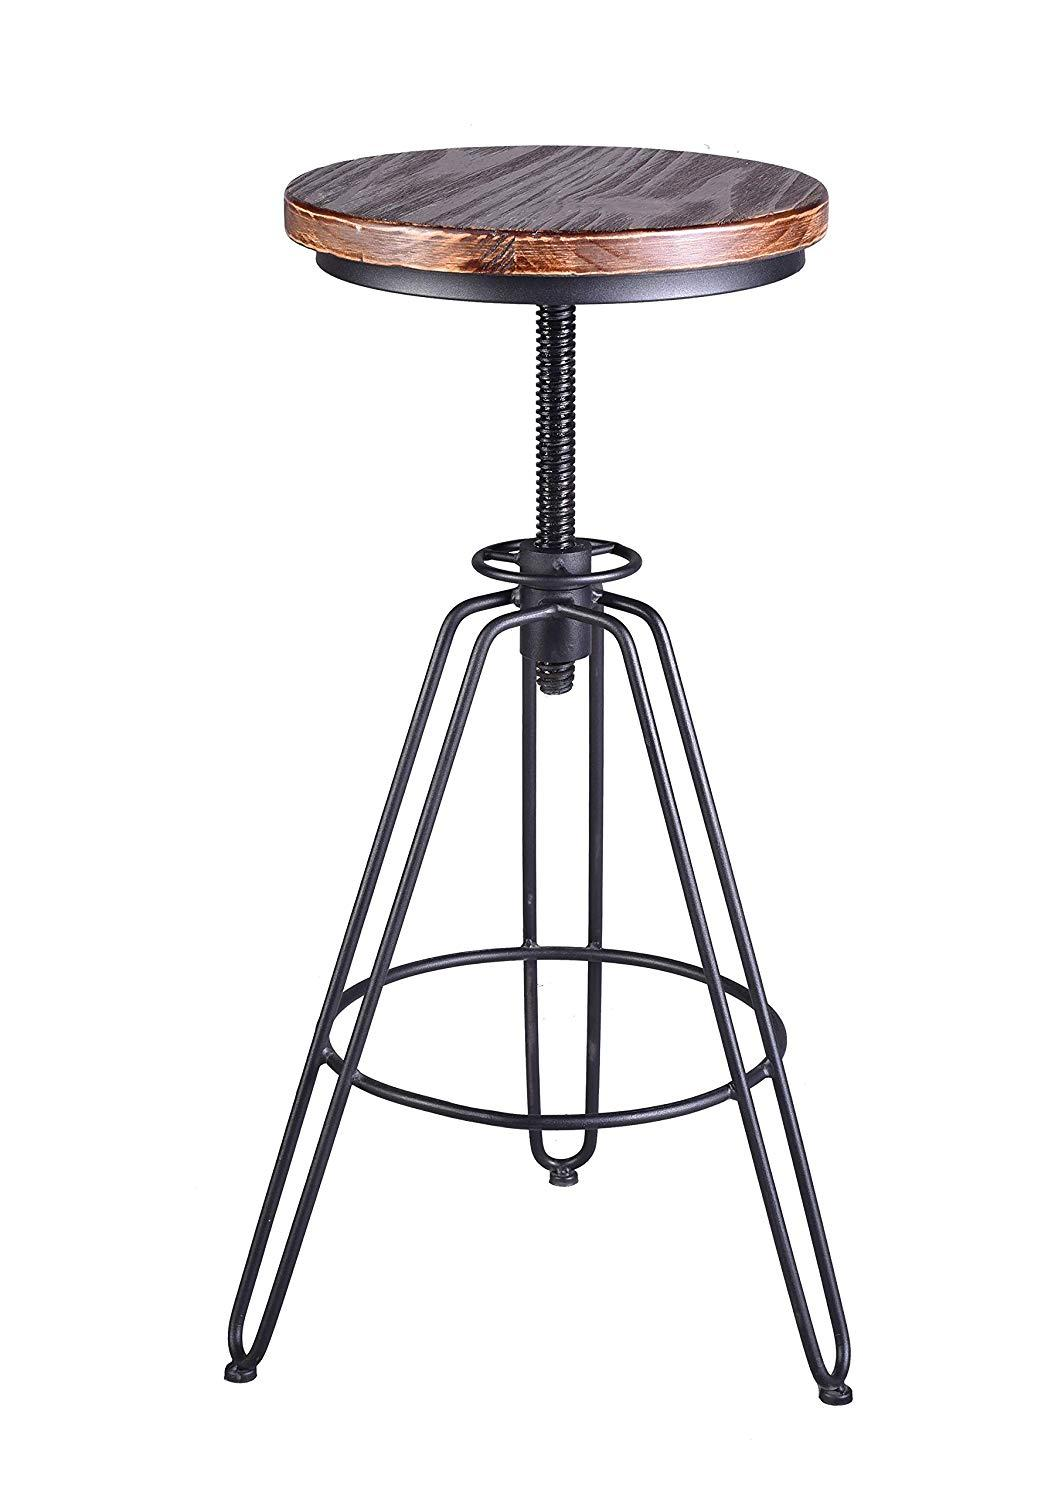 Vintage Industrial Bar Stools Wood Metal Bar Stool Adjustable Height Swivel Chairs Counter Bar Stools